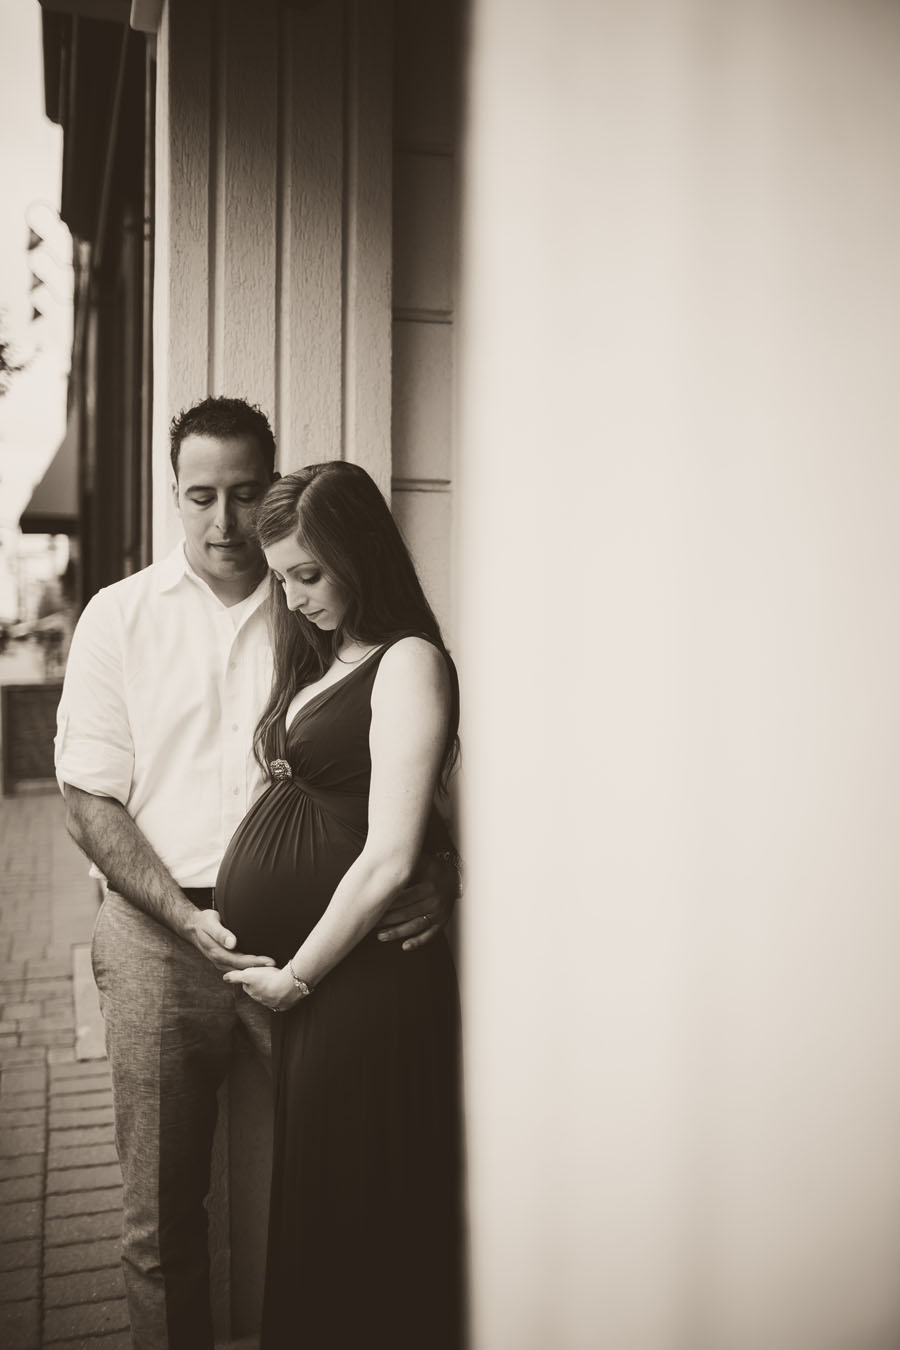 maternity session, maternity photography peterborough, peterborough ontario photographer, ontario wedding photographer, peterborough wedding photographer, ontario maternity photographer